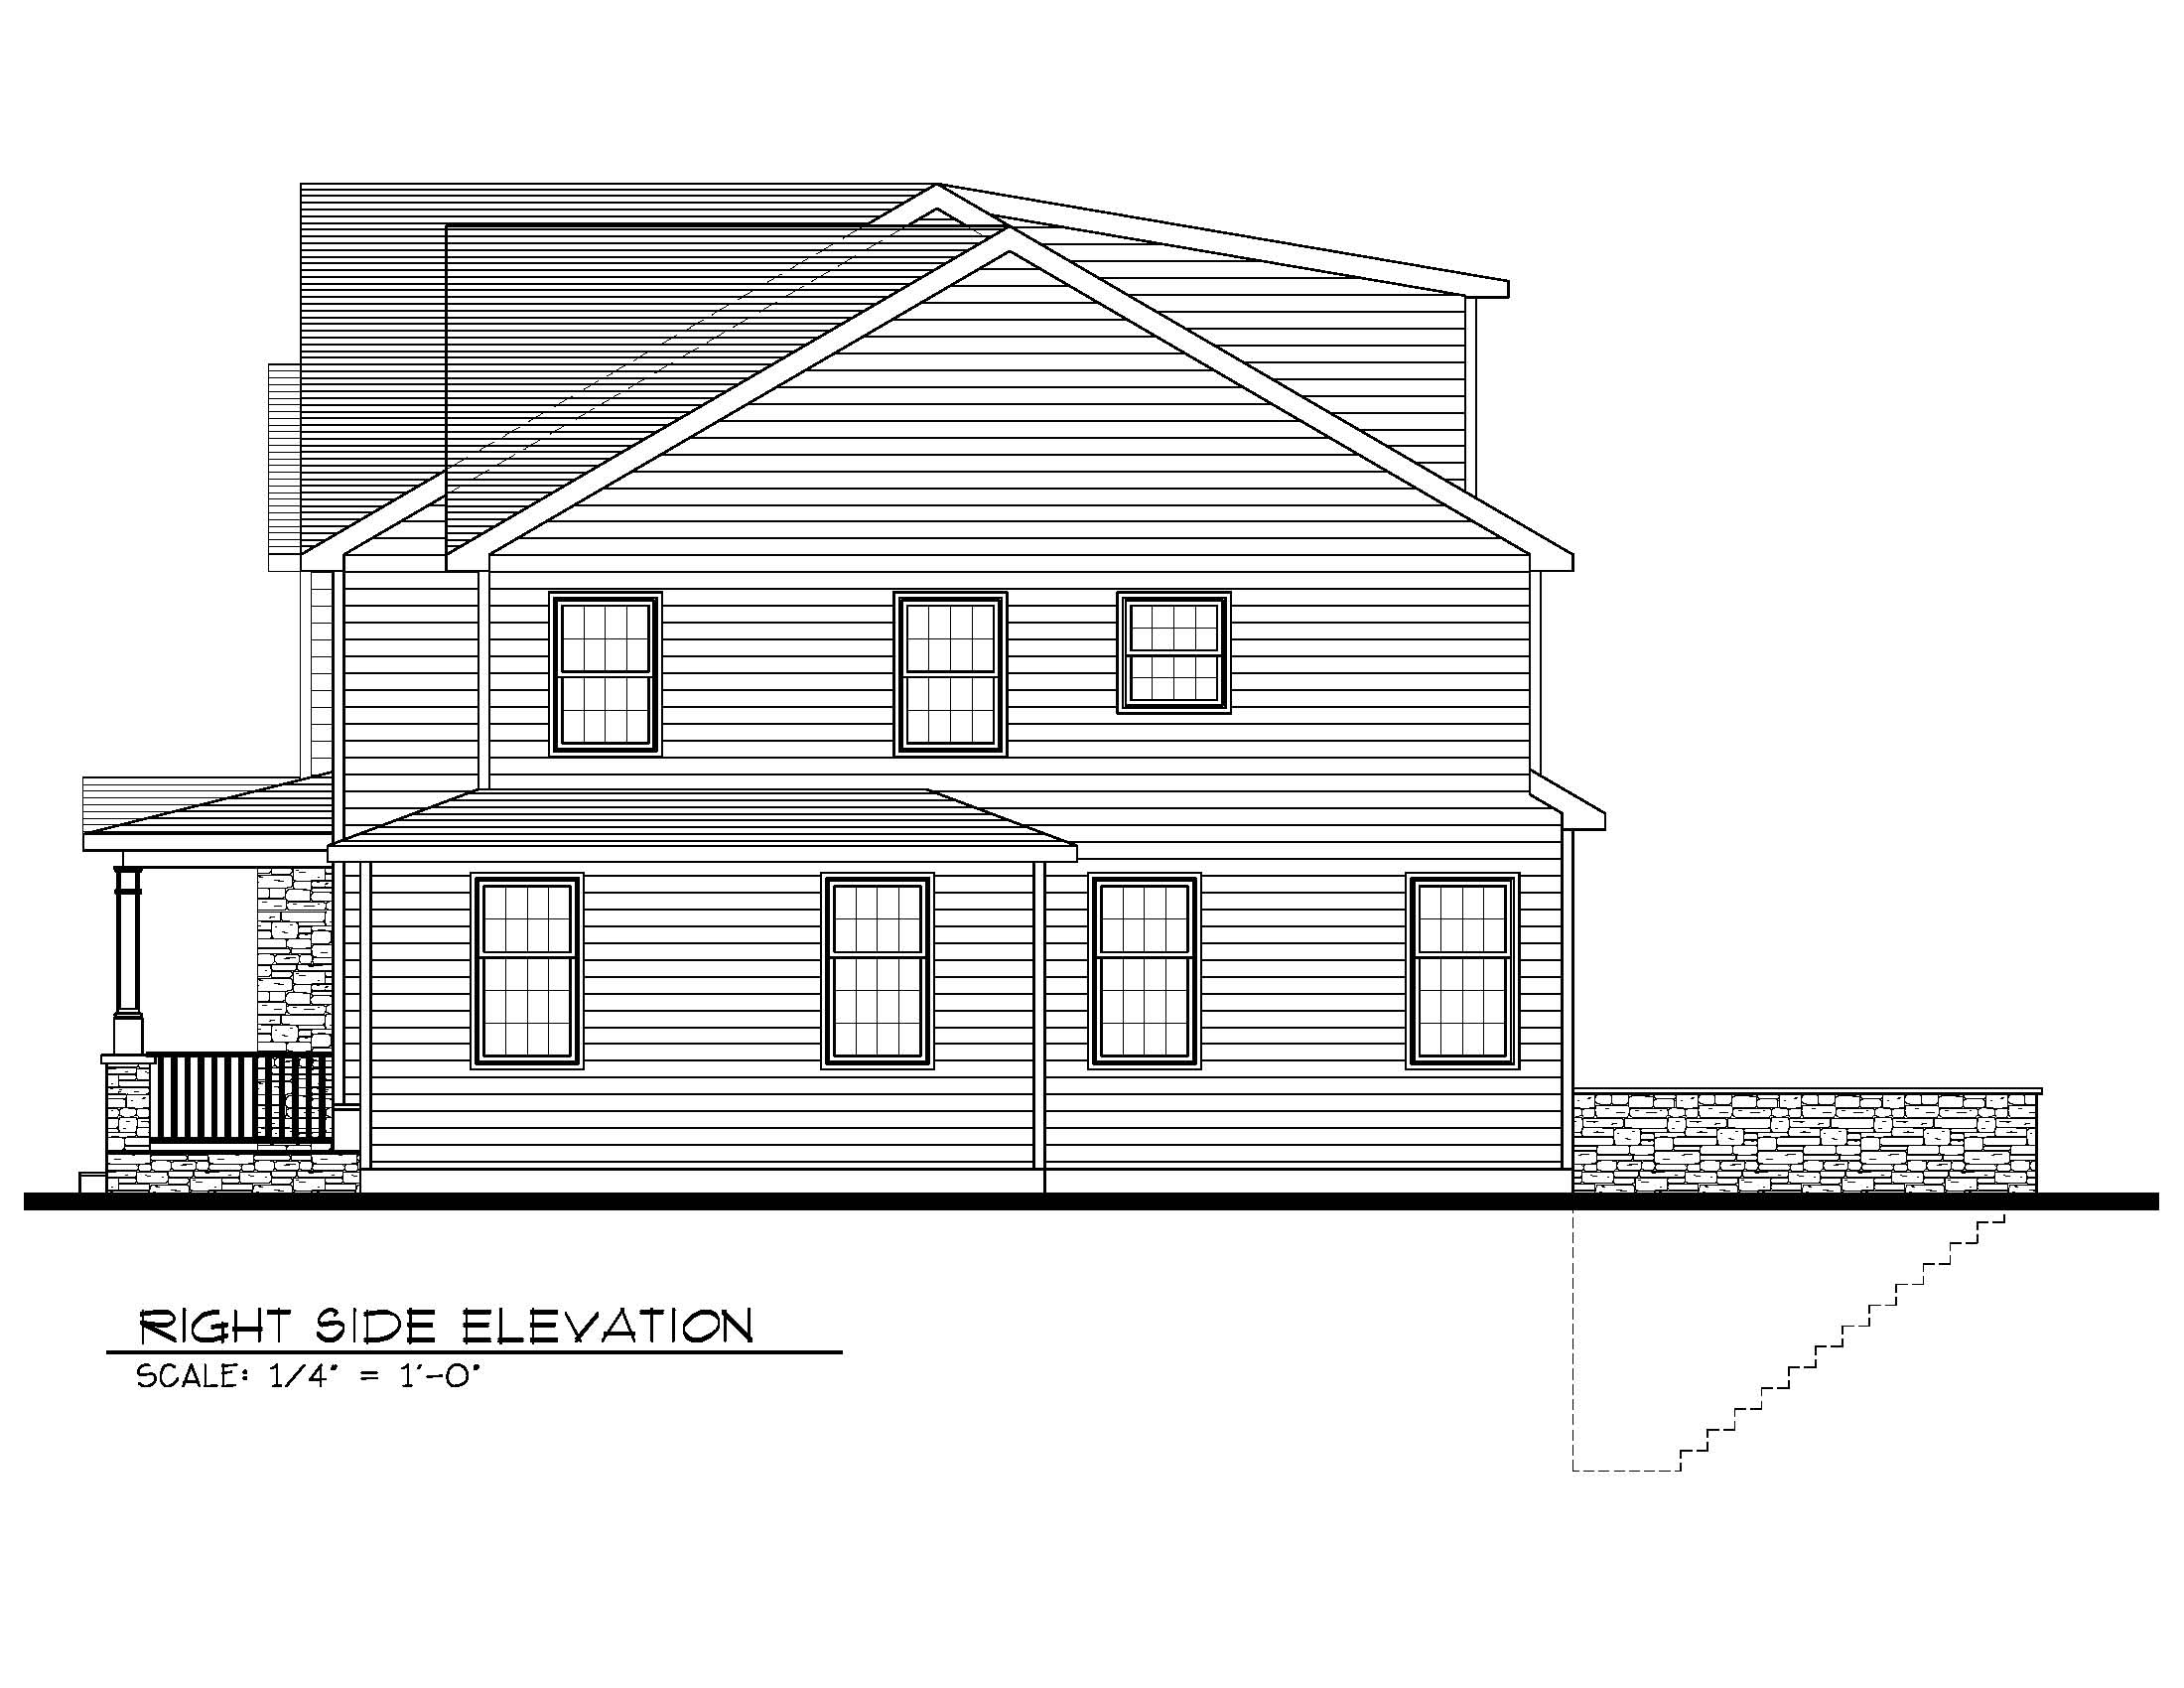 131-Barchester-Right-Side-Elevation